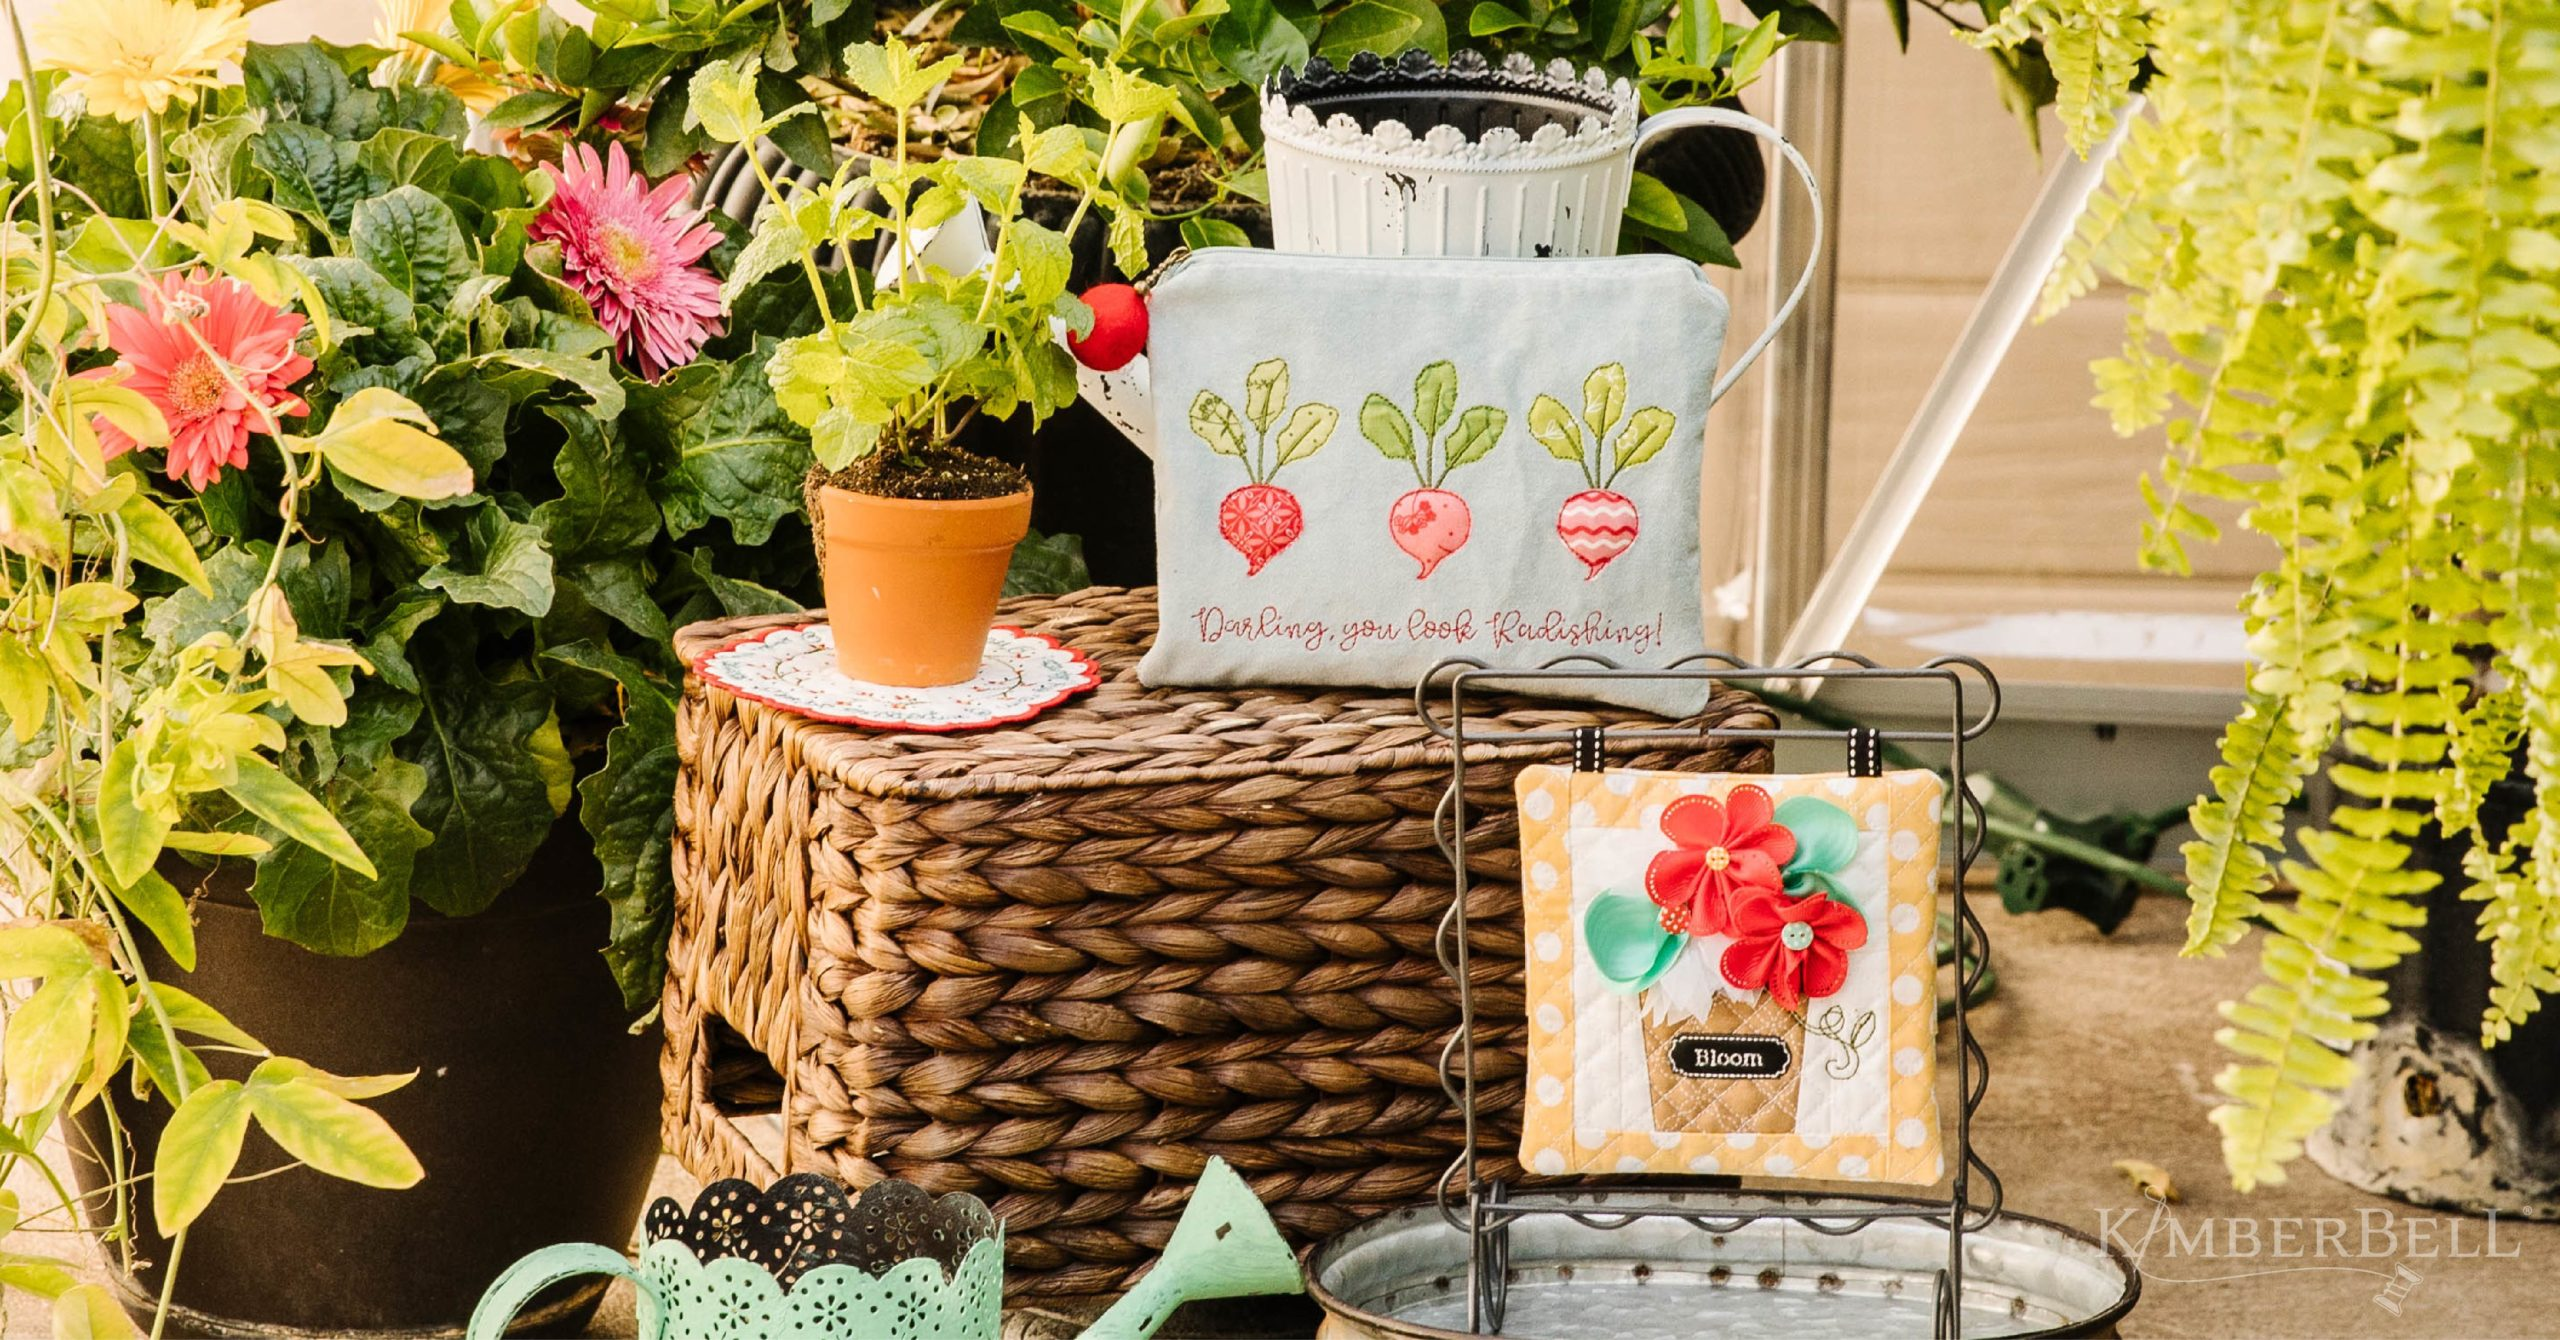 The Garden Guild One-Day Machine Embroidery Event from Kimberbell